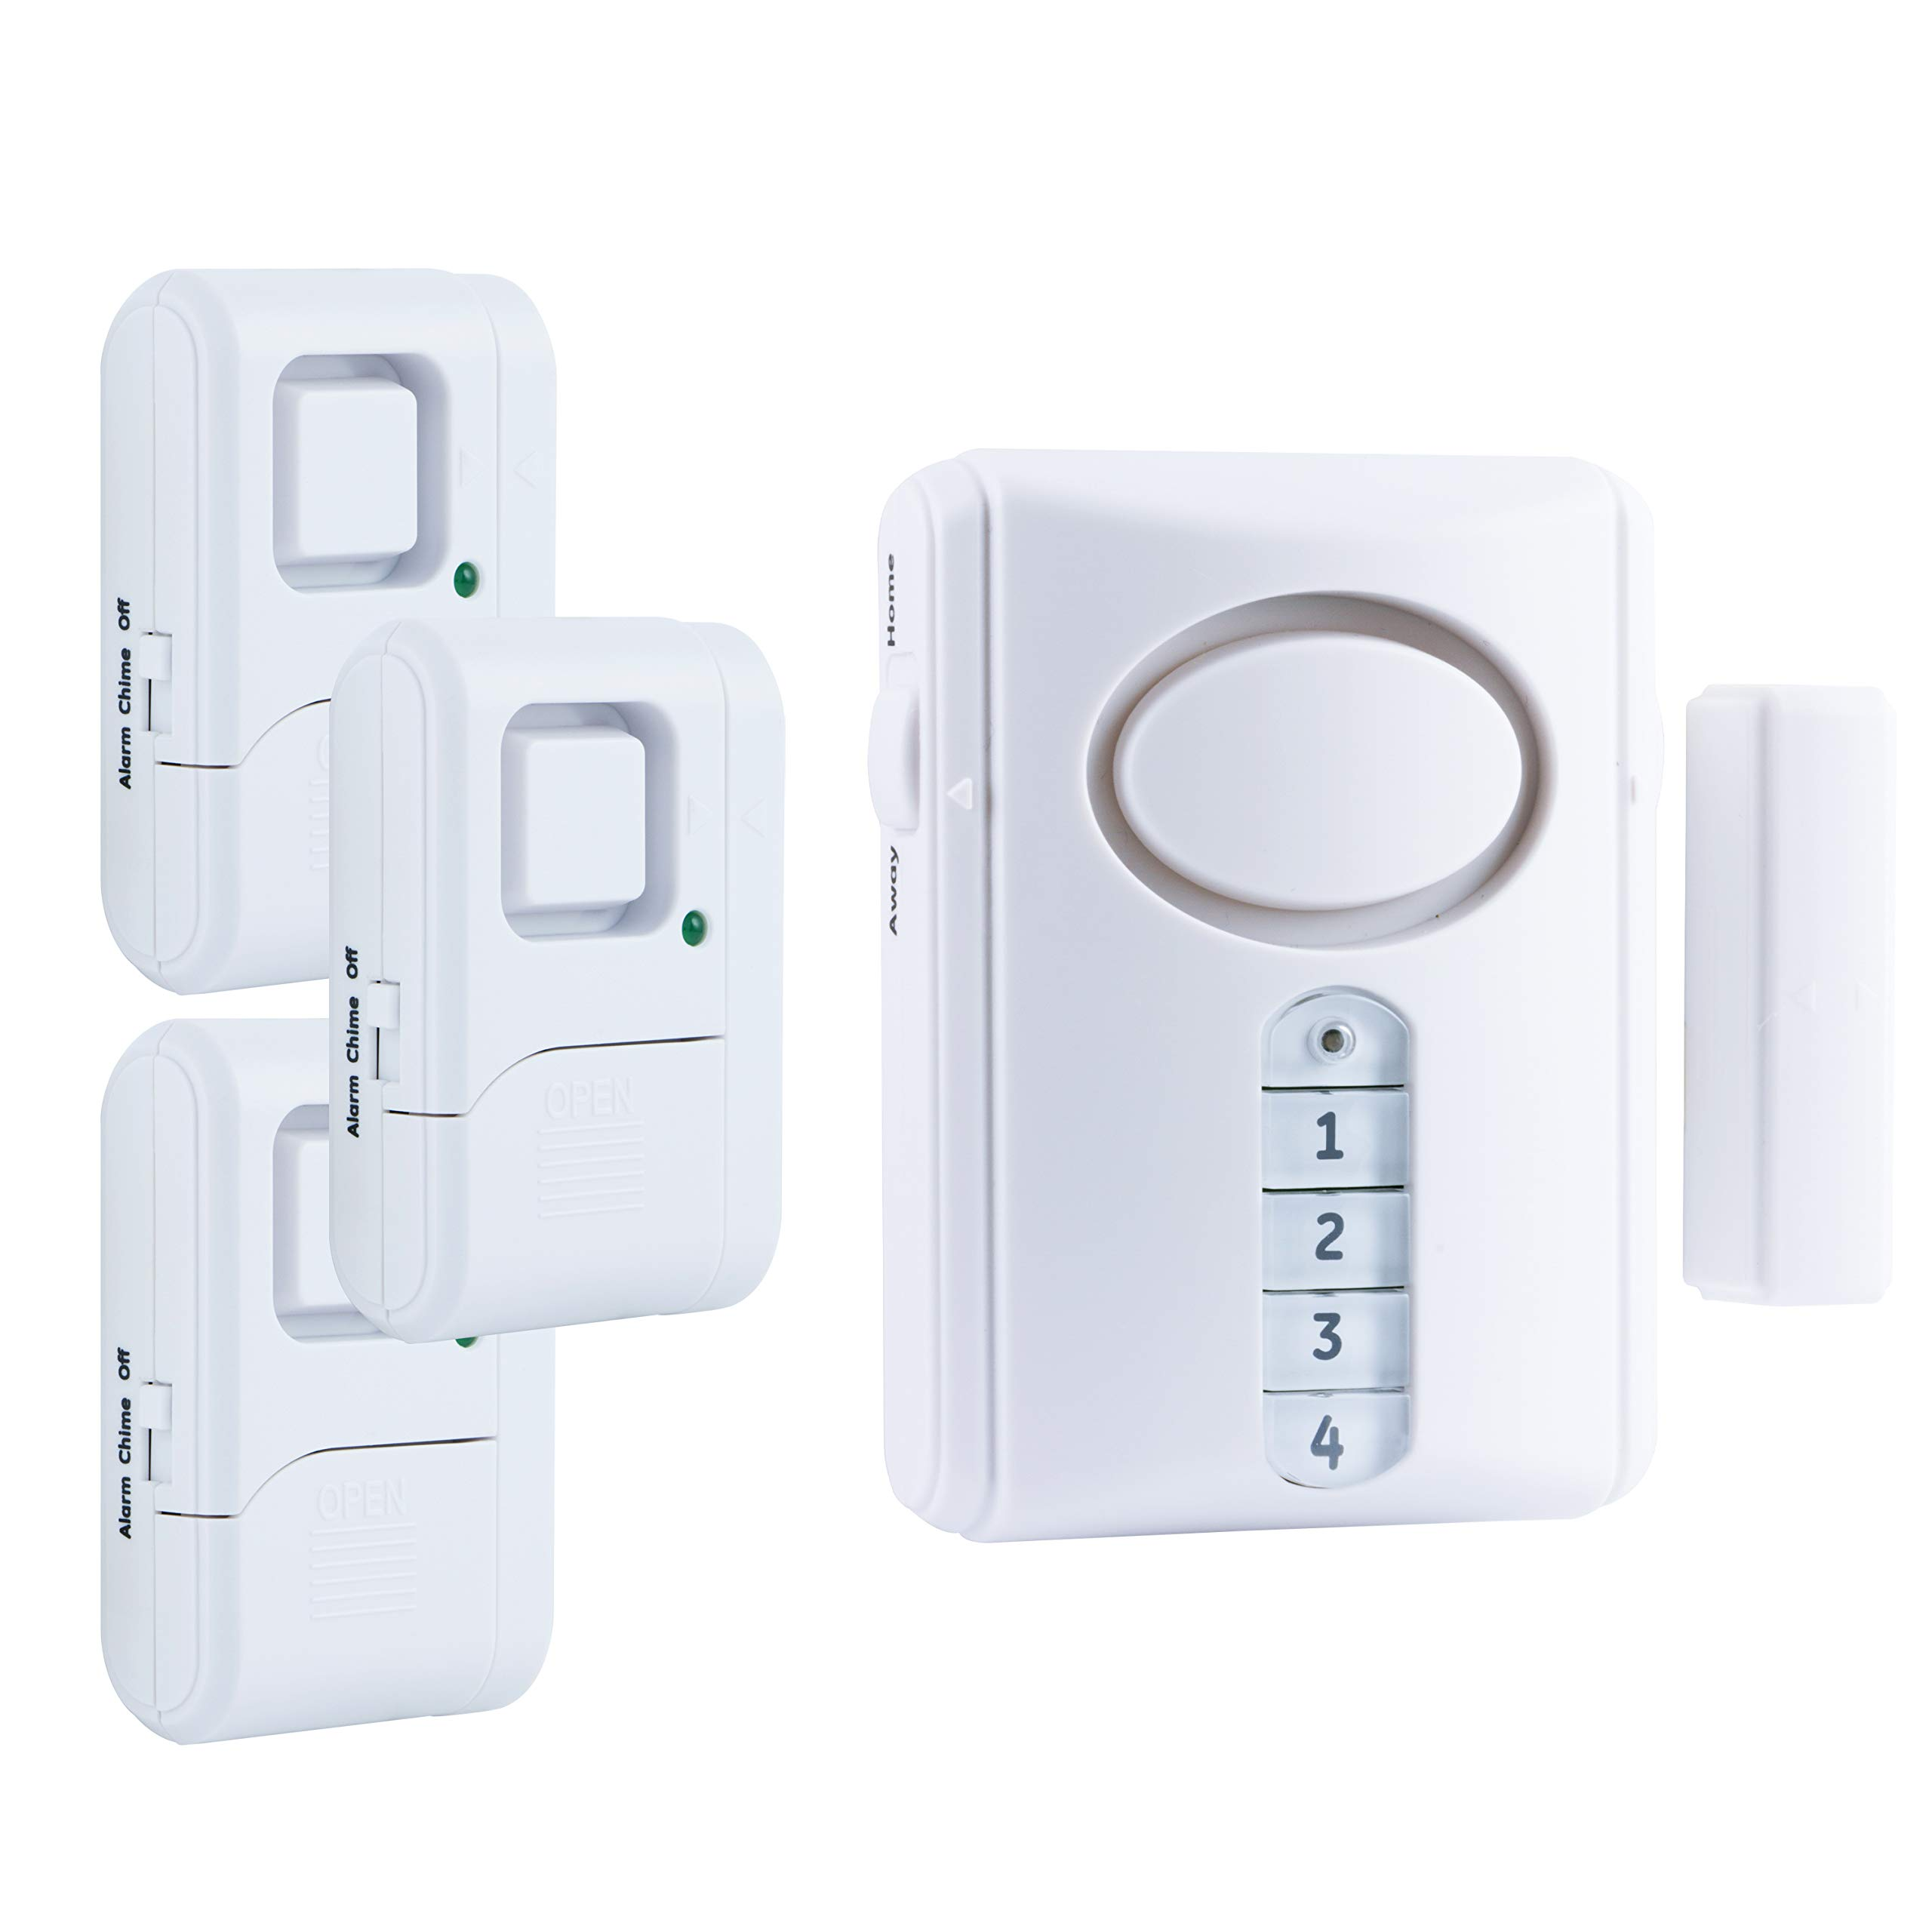 GE Personal Security Alarm Kit, Includes Deluxe Door Alarm with Keypad Activation and Window/Door Alarms, Easy Installation, DIY Home Protection, Burglar Alert, Magnetic Sensor, Off/Chime/Alarm, 51107 by GE